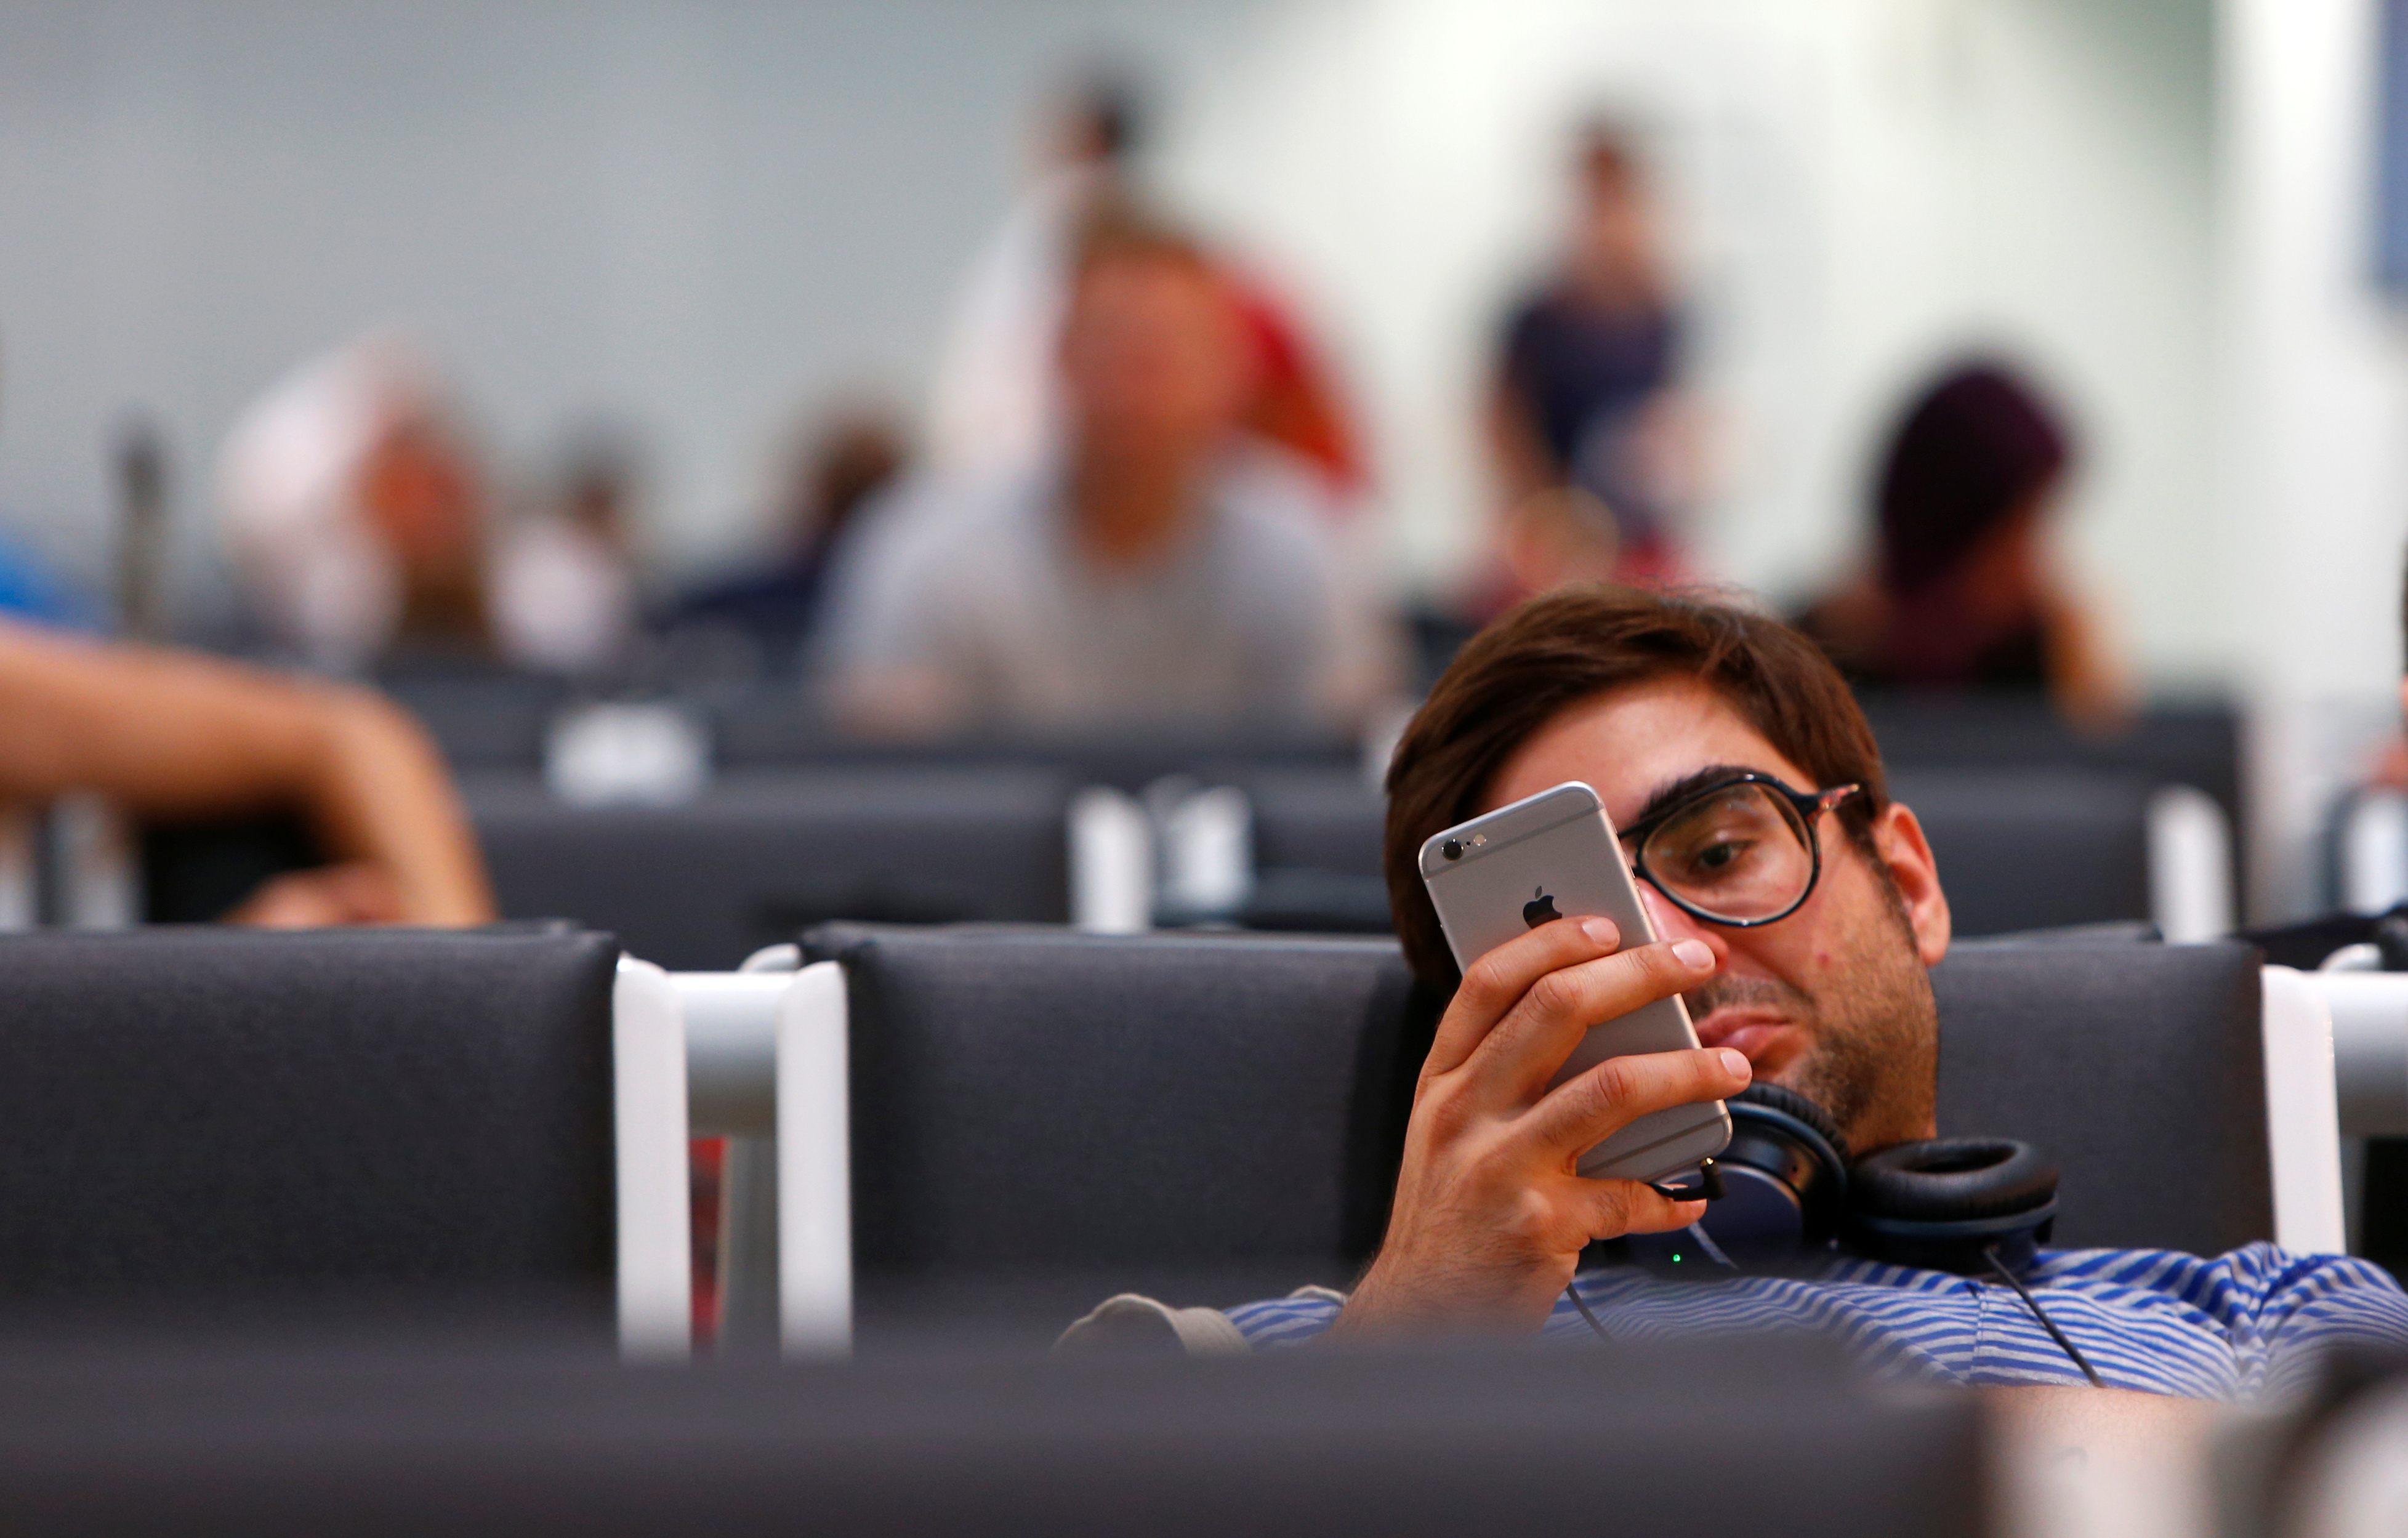 Man uses iphone while waiting for his airplane at Munich airport.